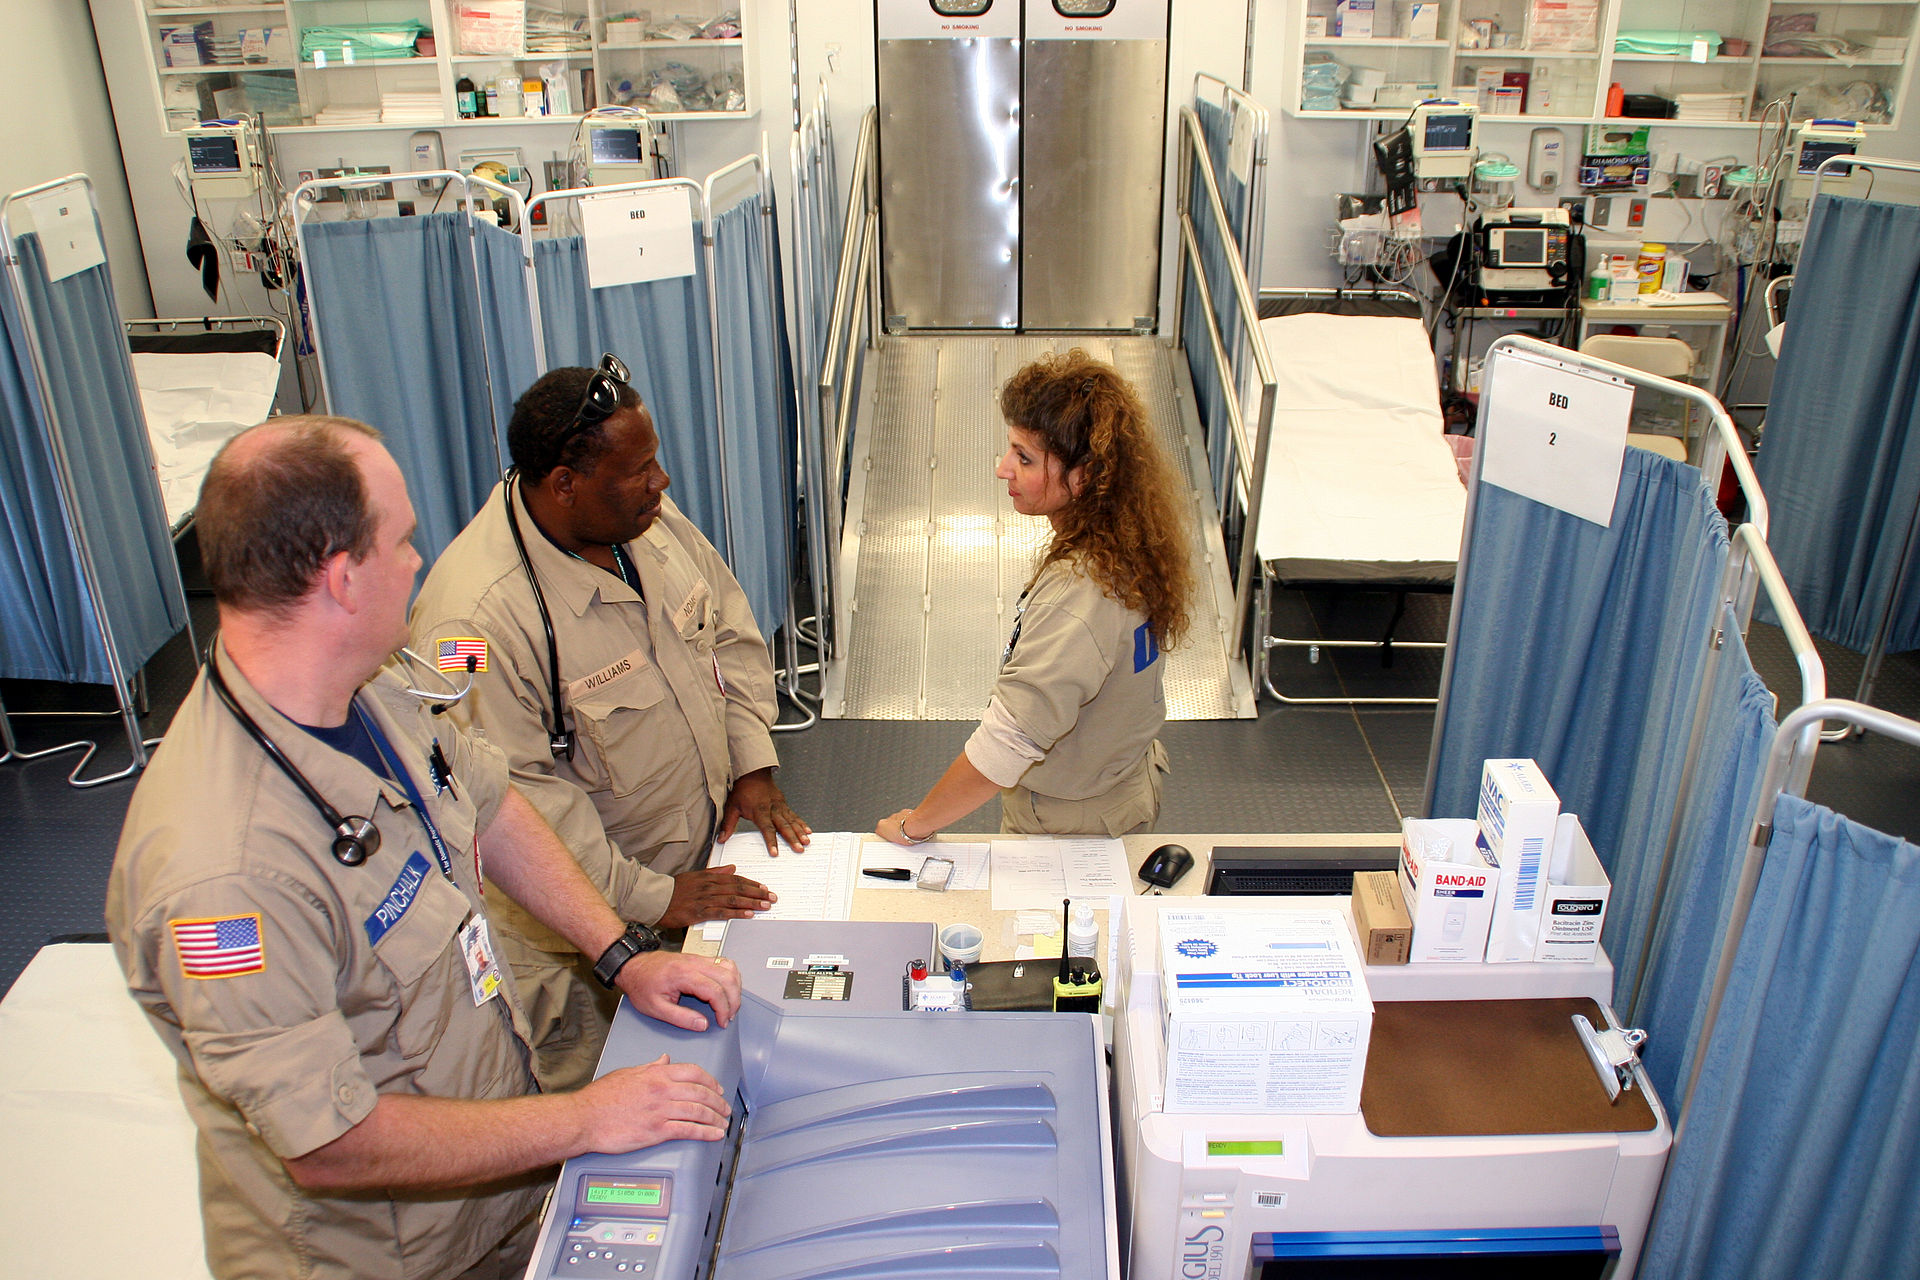 Emergency Room Staffing Companies In Tennessee